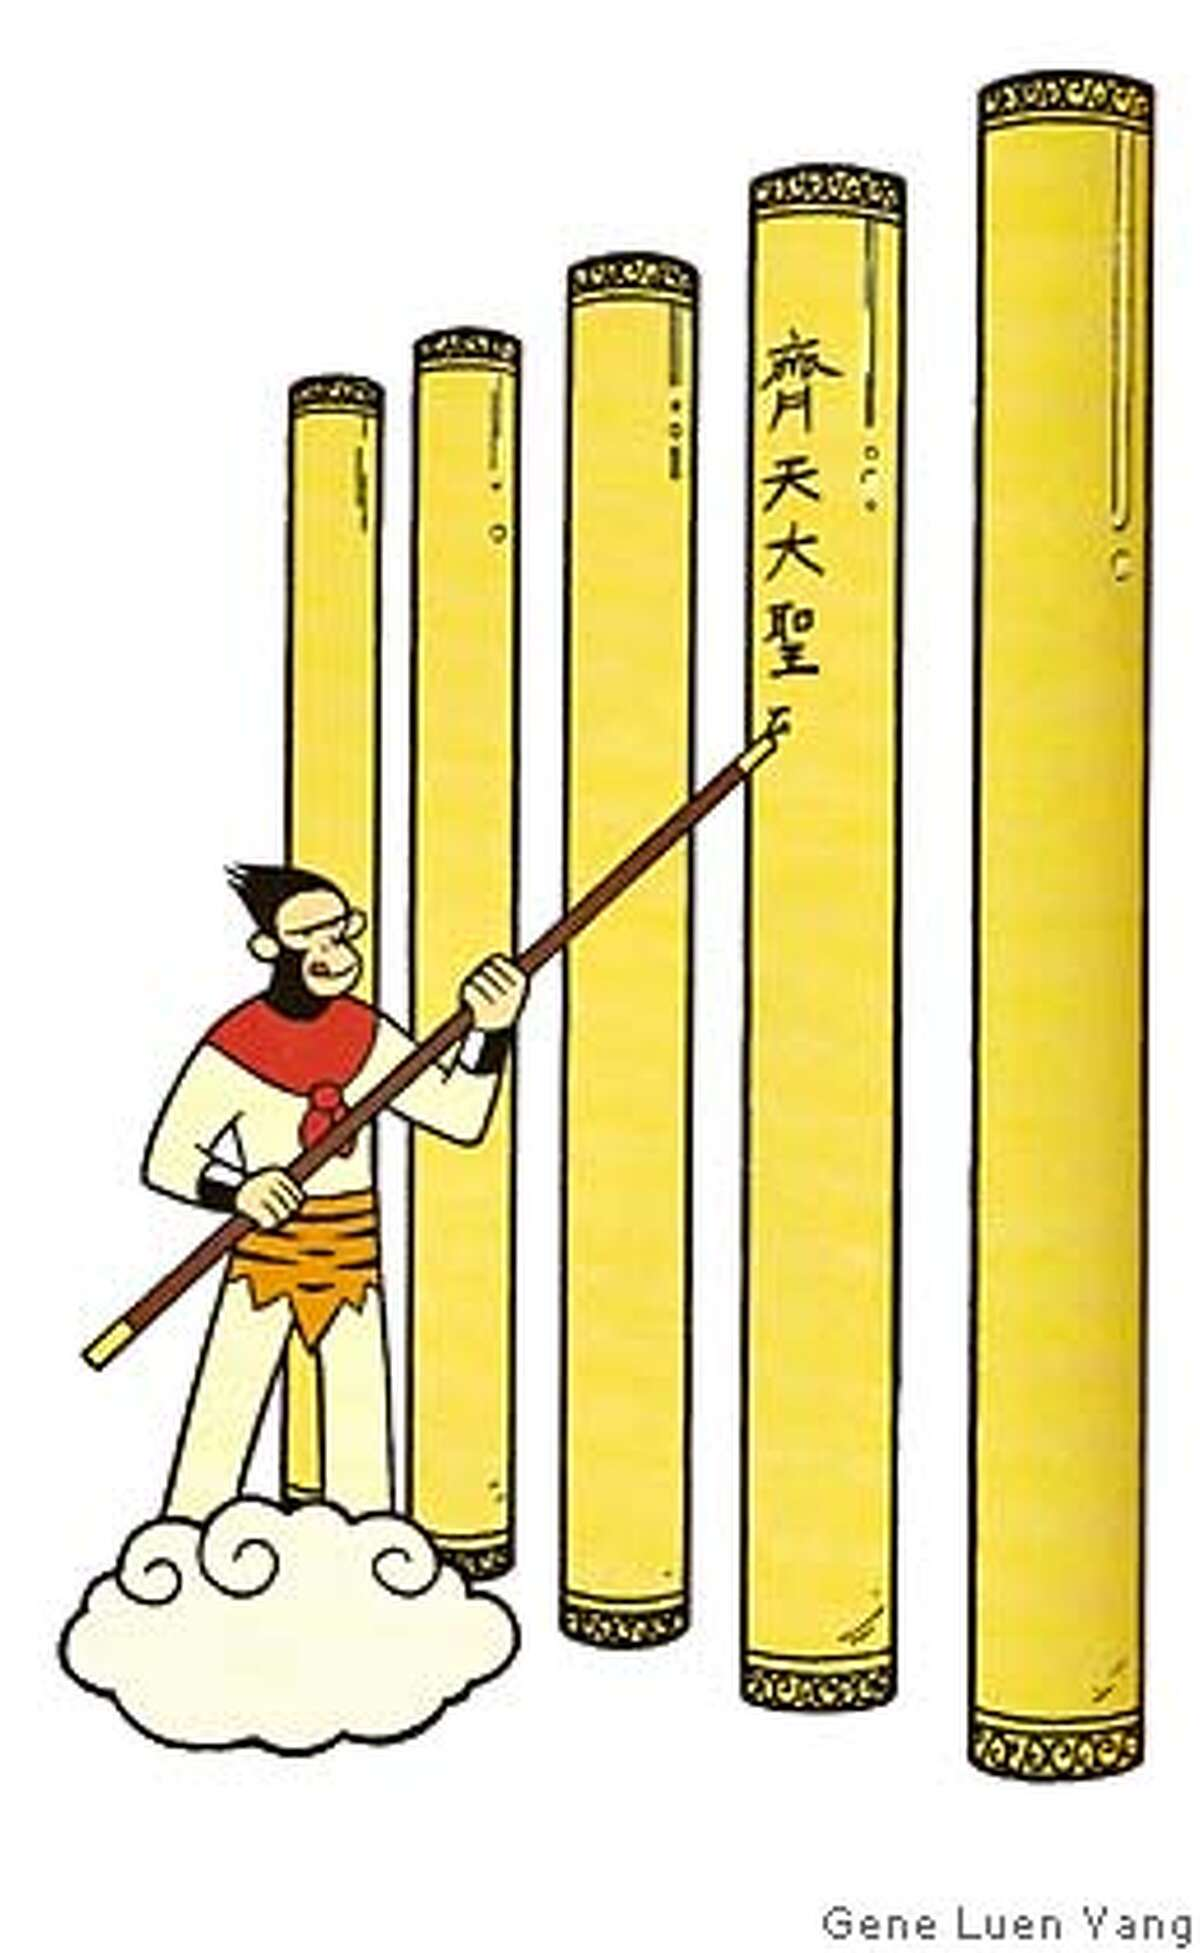 """This is an image scanned from the graphic novel """"American Born Chinese"""" by Gene Luen Yang. One of the interrelated three stories in this book about assimilation involves a retelling of the old Chinese fable of the Monkey King, who is depicted here mischievously leaving his mark on one of five golden pillars he finds at the edge of all existence. Copyright 2006 by Gene Luen Yang"""